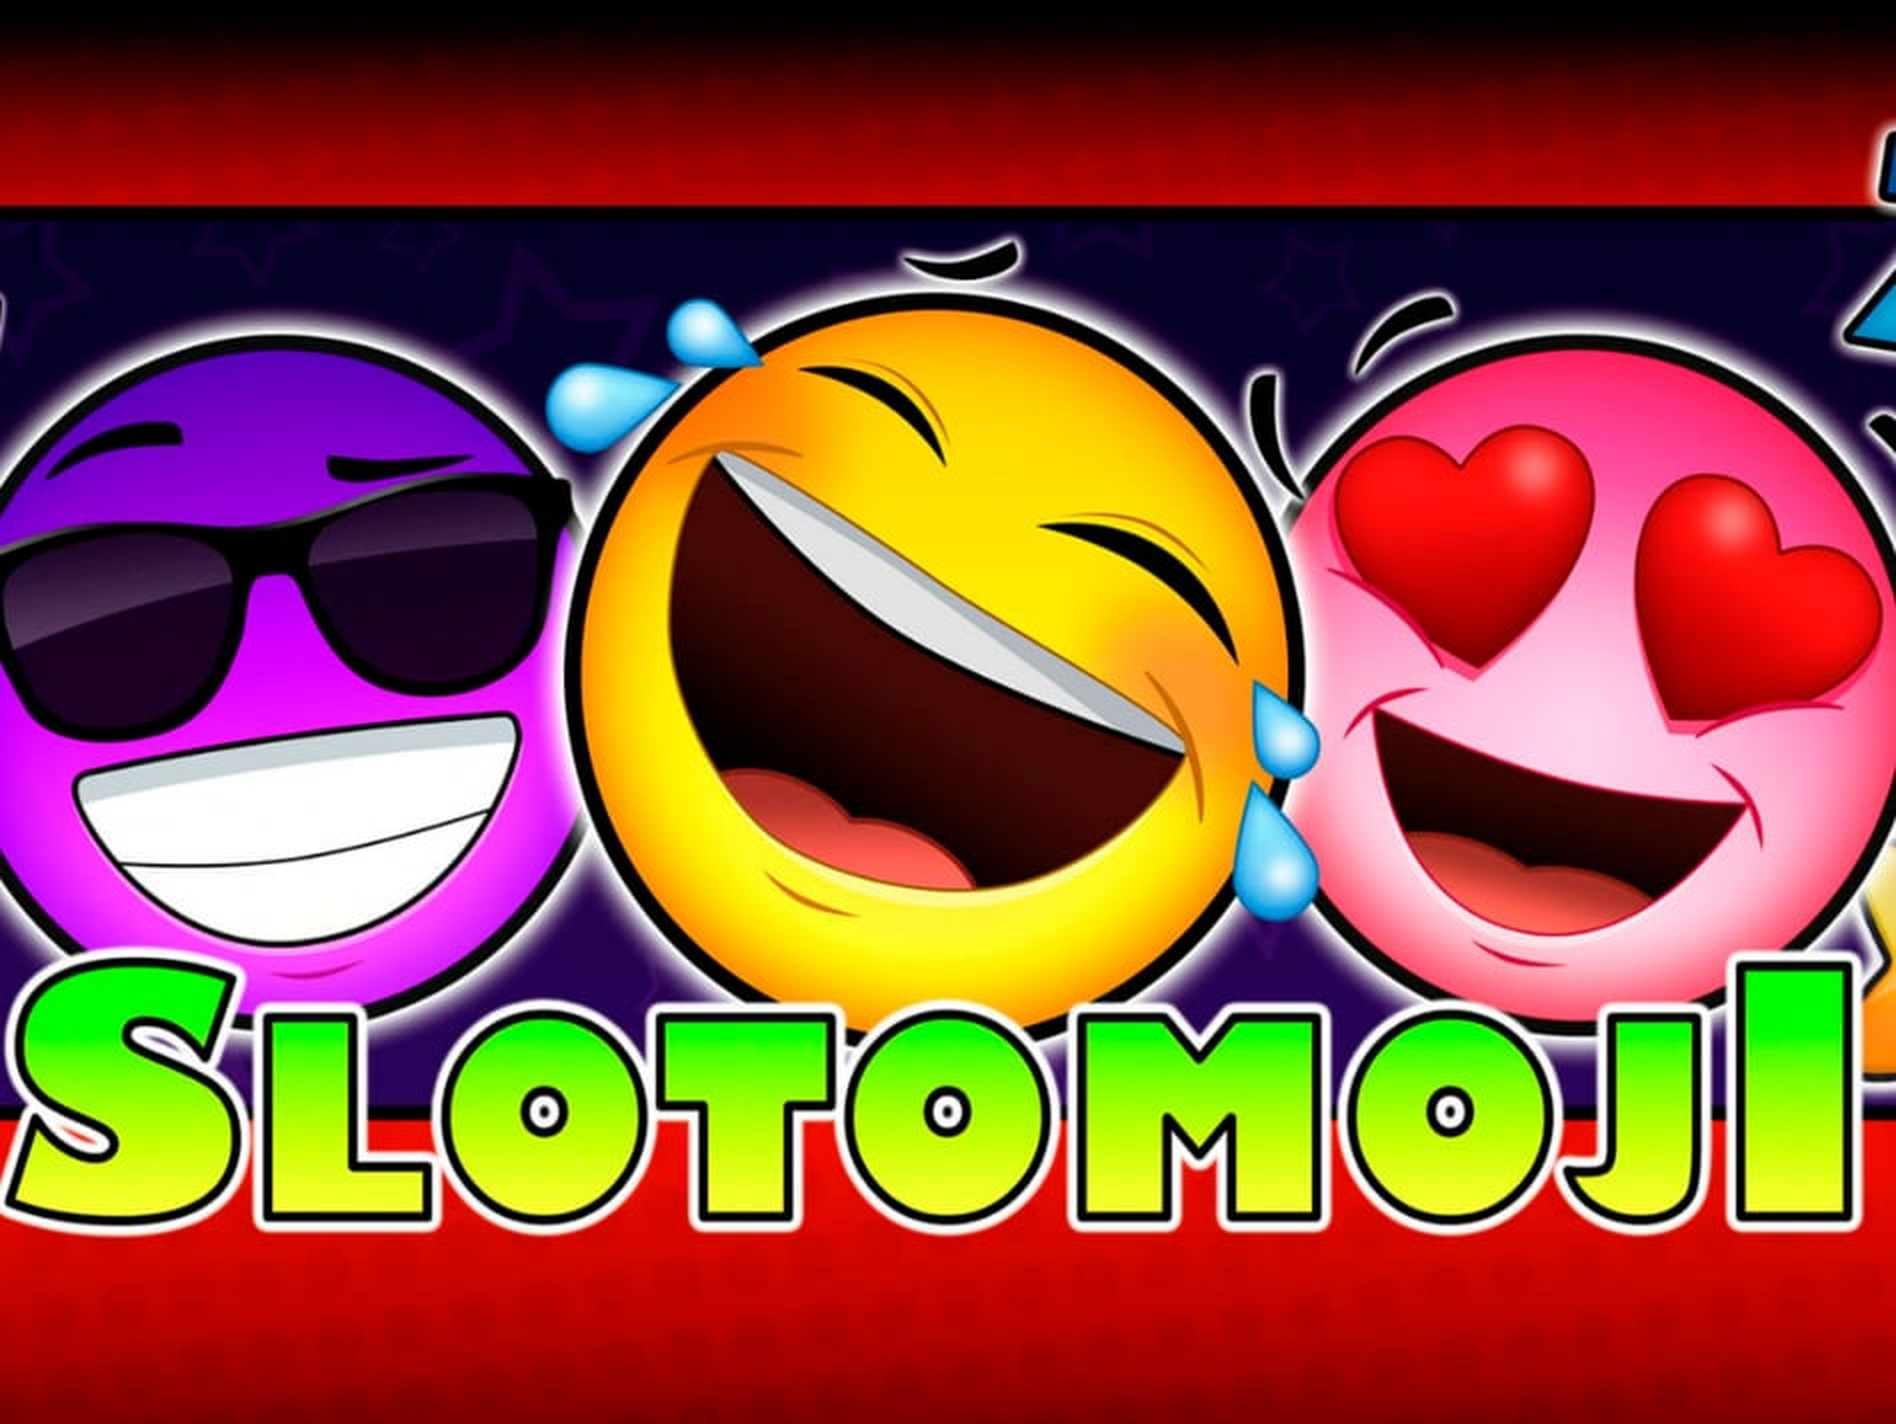 The Slotomoji Online Slot Demo Game by Endorphina